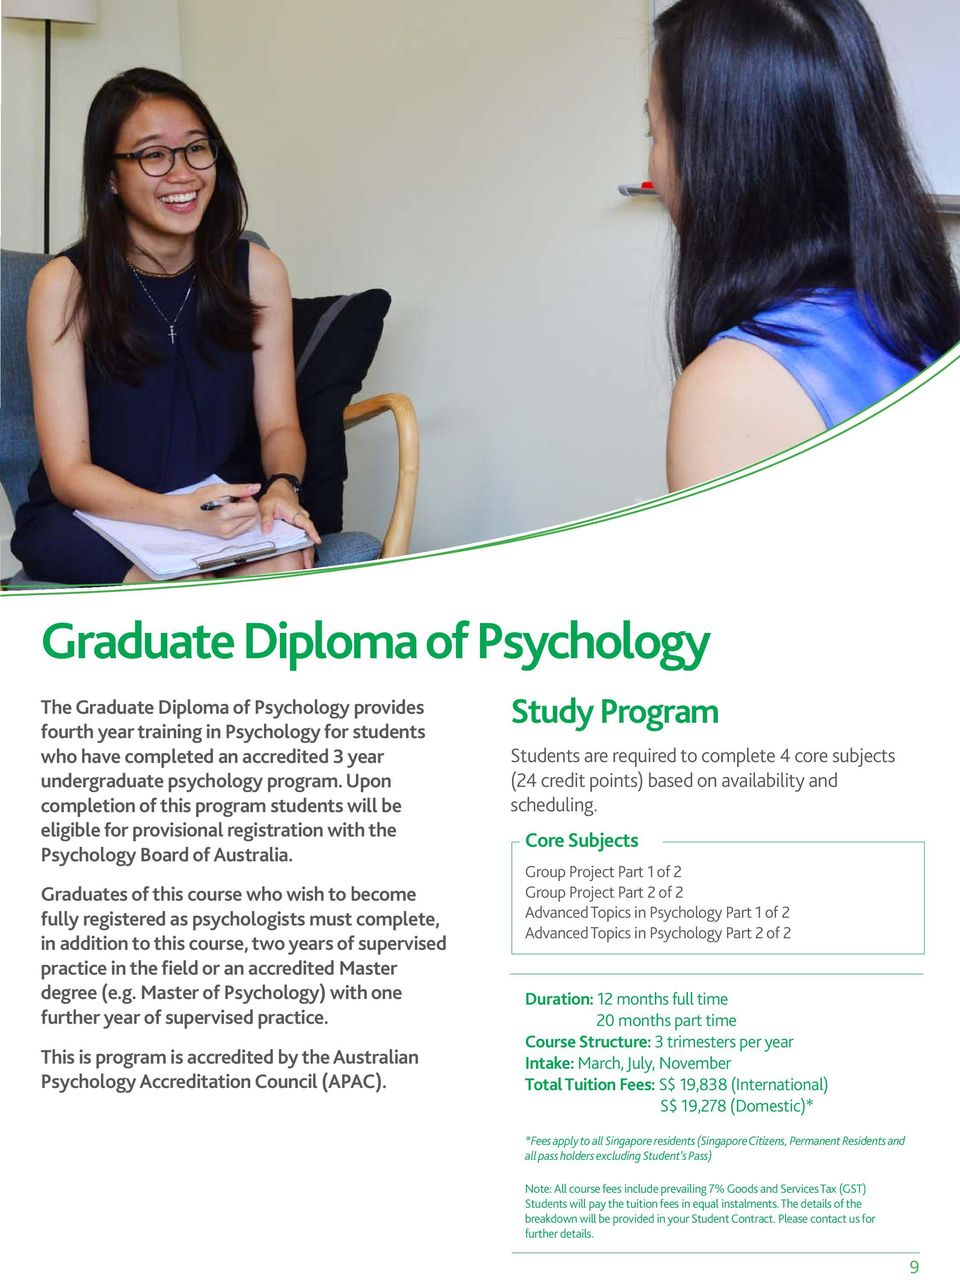 Graduates of this course who wish to become fully registered as psychologists must complete, in addition to this course, two years of supervised practice in the field or an accredited Master degree